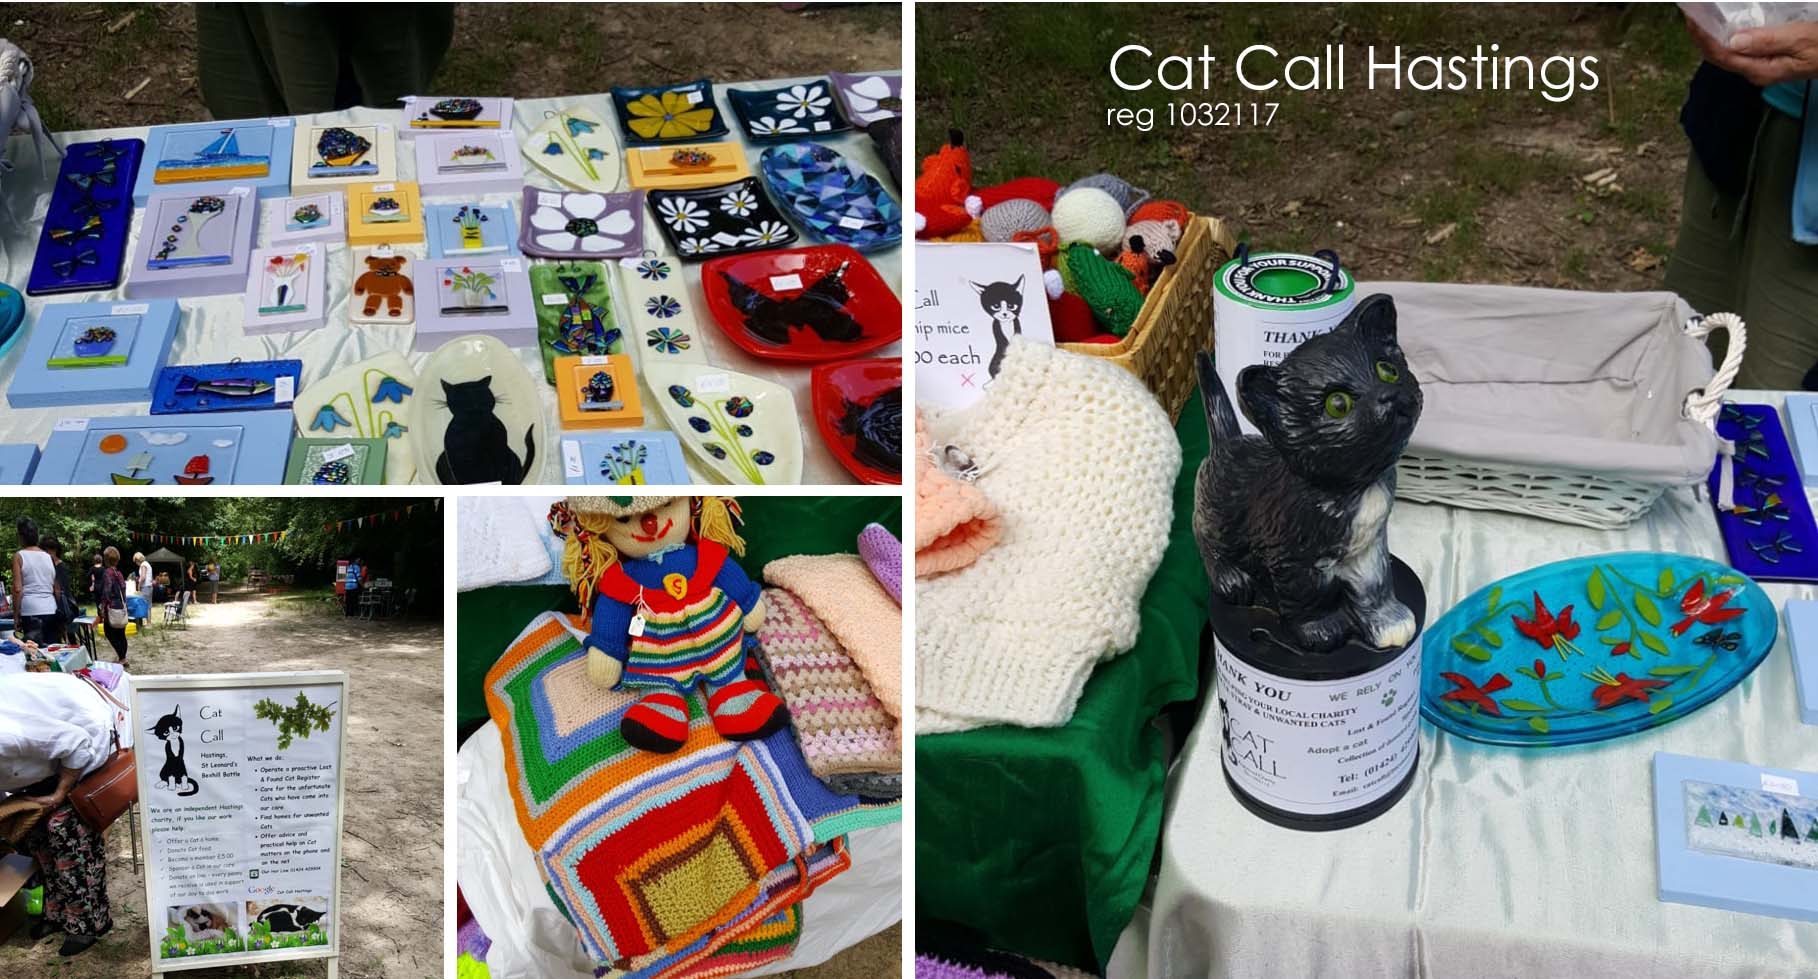 Cat Call Fun at the Summer Fayre